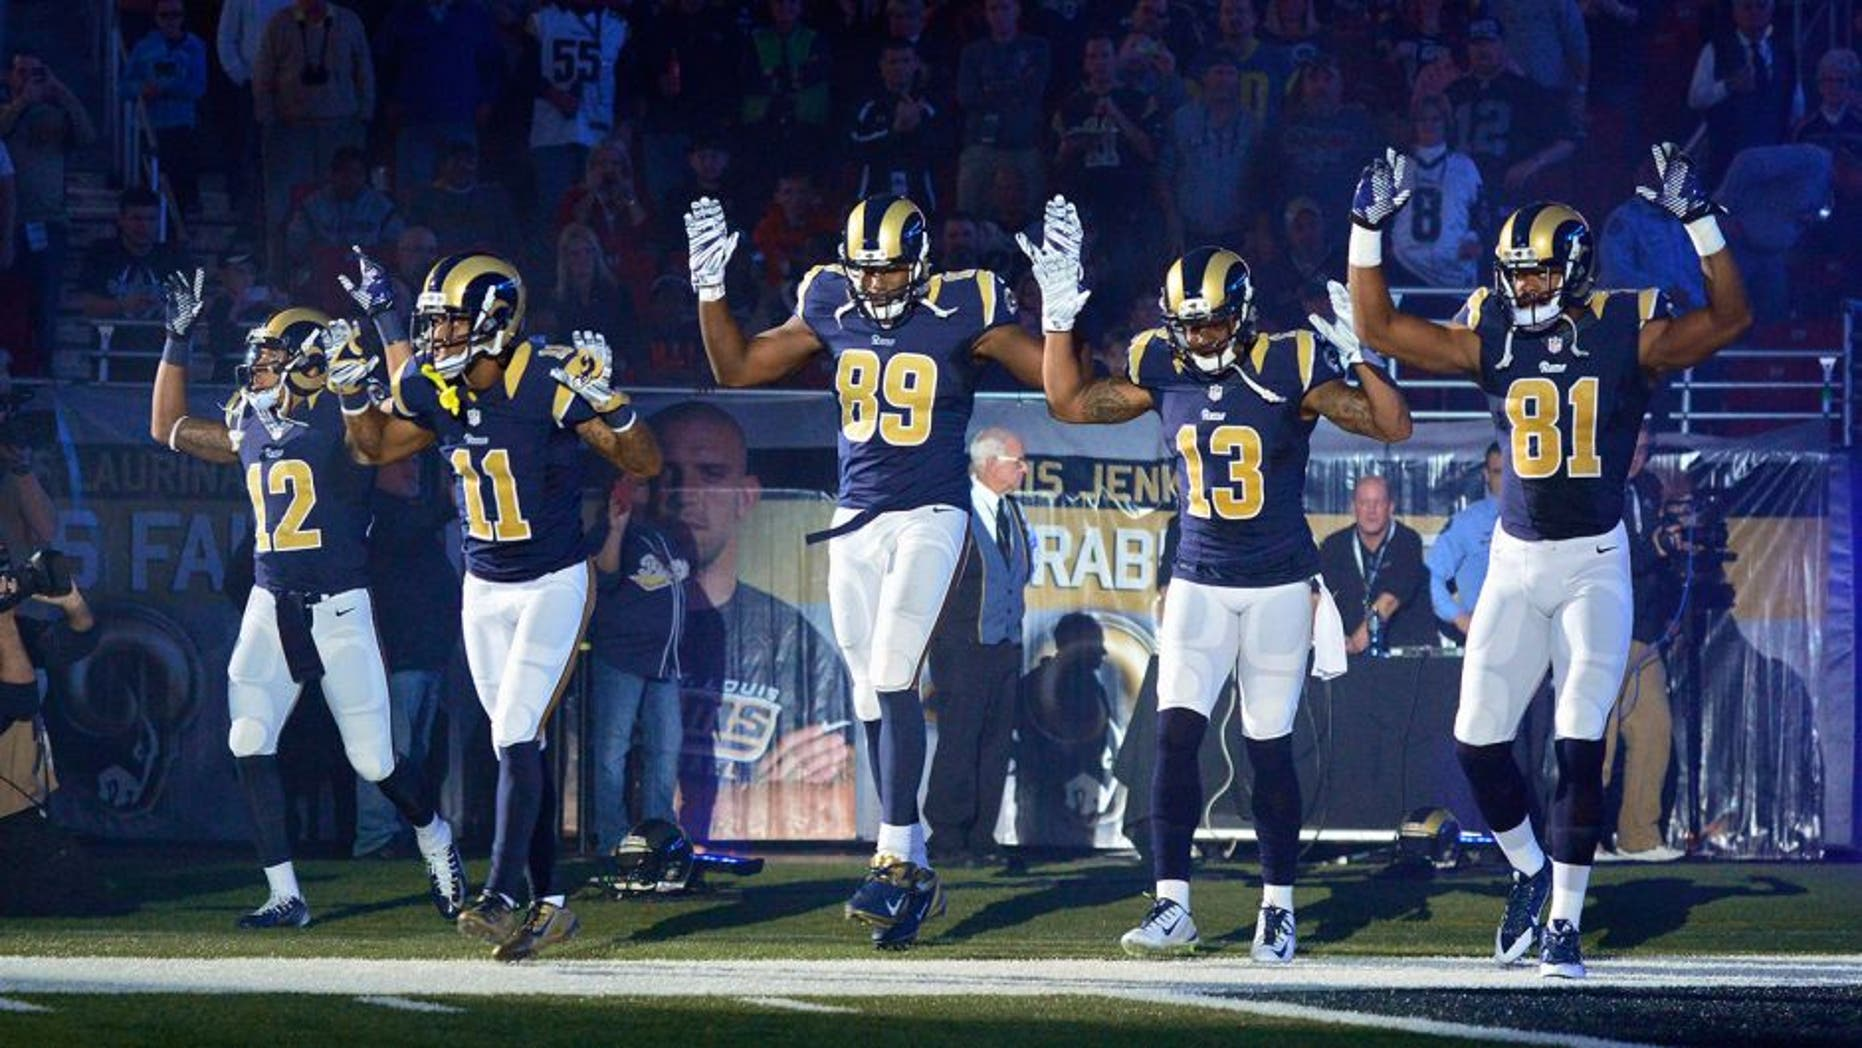 Nov 30, 2014; St. Louis, MO, USA; St. Louis Rams wide receiver Stedman Bailey (12) and wide receiver Tavon Austin (11) and tight end Jared Cook (89) and wide receiver Chris Givens (13) and wide receiver Kenny Britt (81) put their hands up to show support for Michael Brown before a game against the Oakland Raiders at the Edward Jones Dome. Mandatory Credit: Jeff Curry-USA TODAY Sports